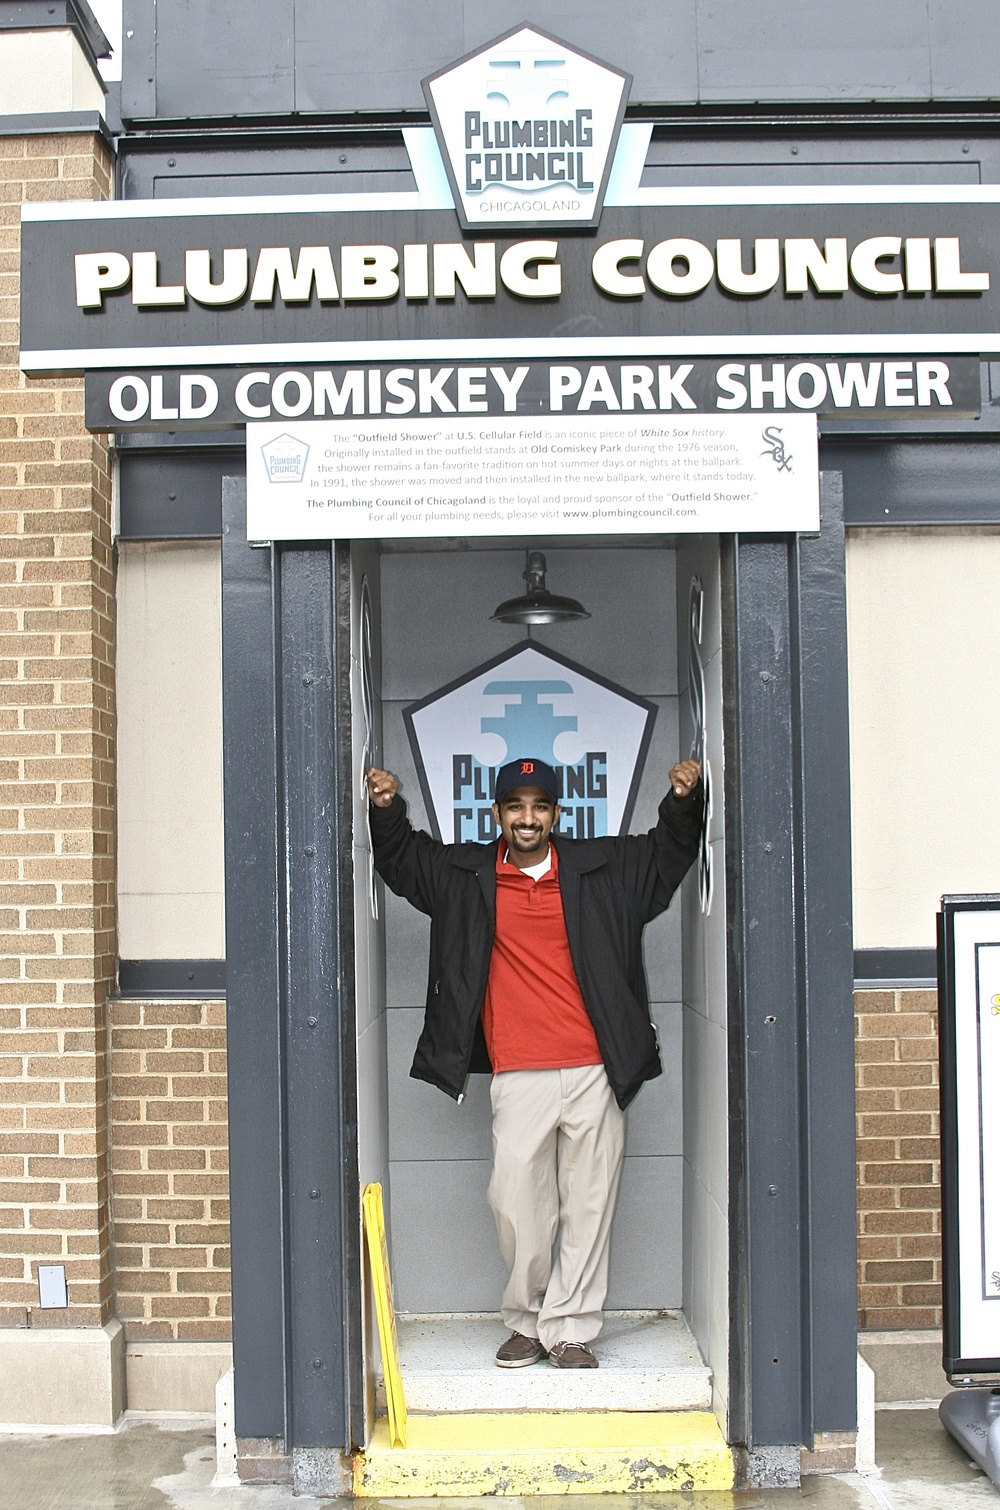 Me in the Old Comiskey shower